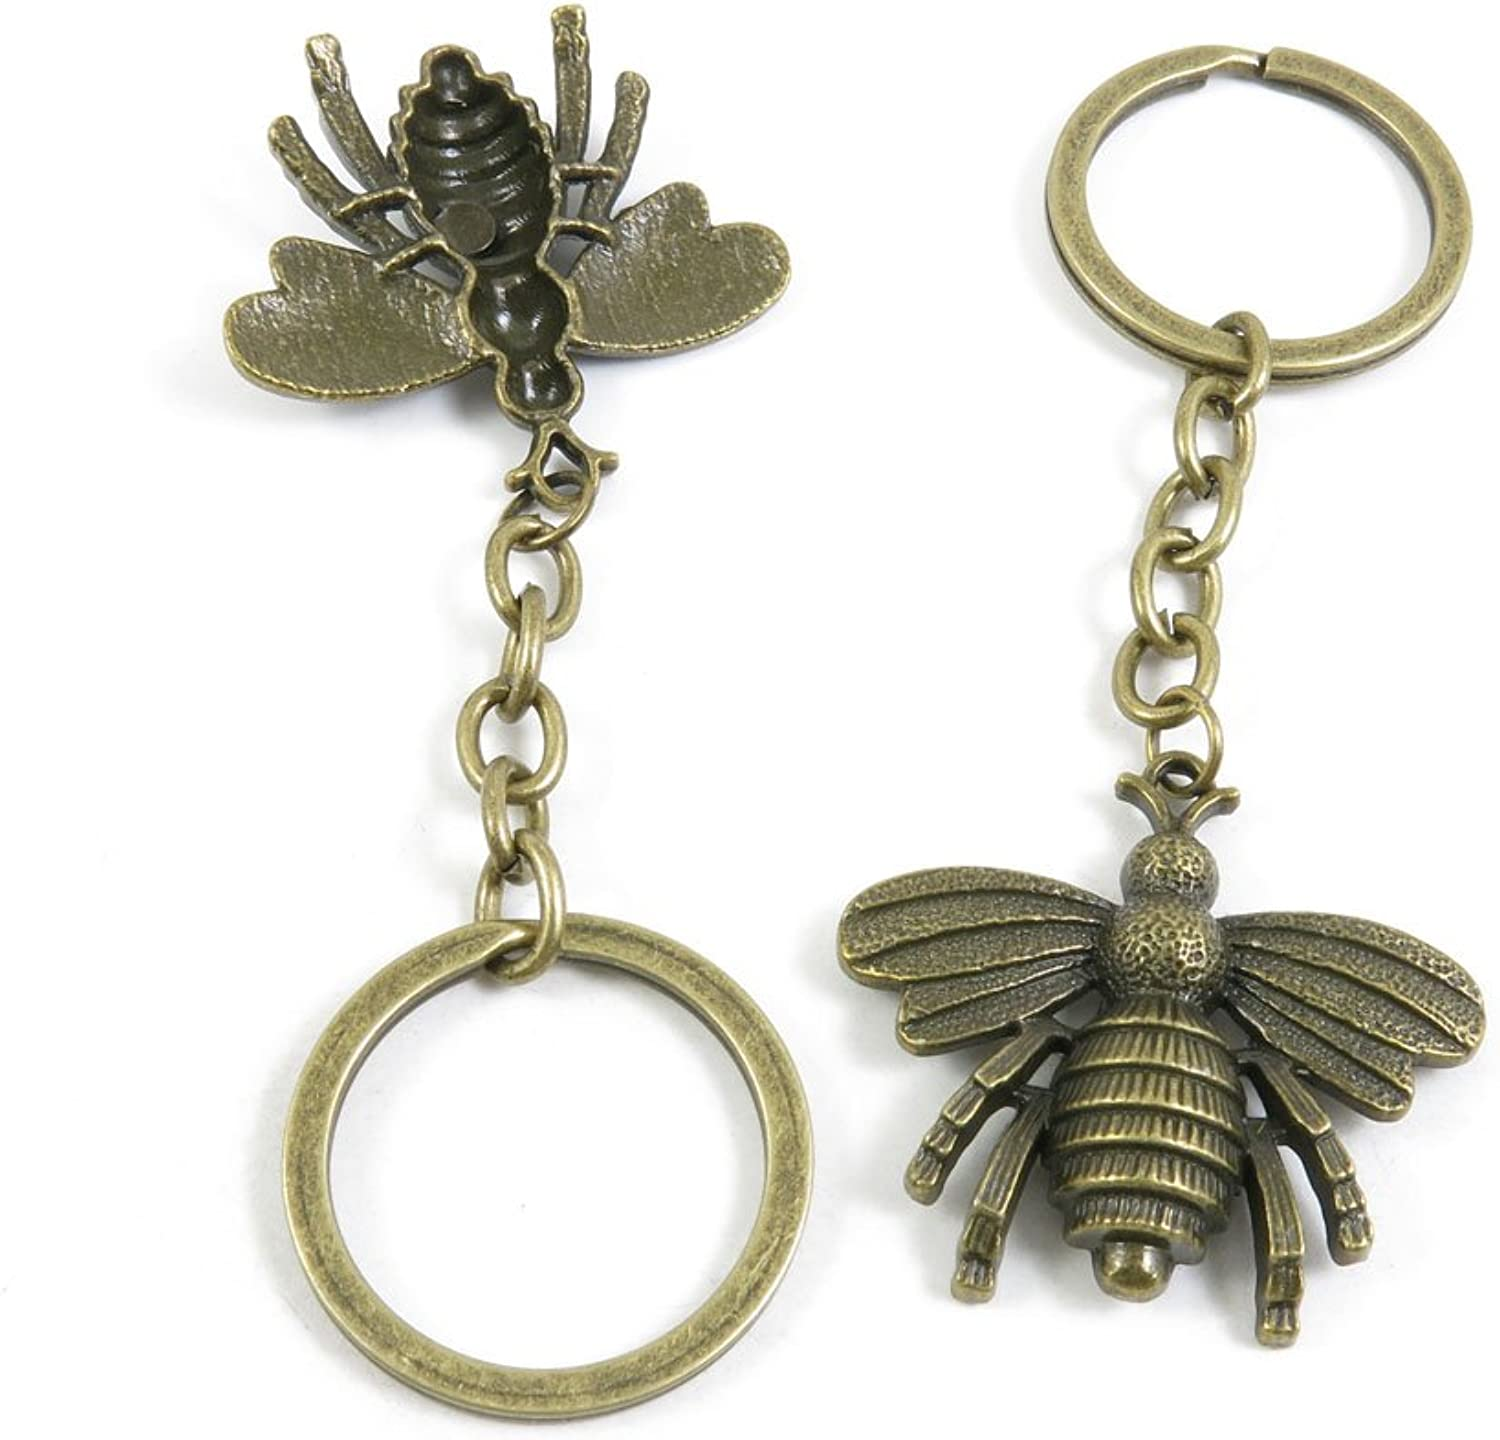 110 Pieces Fashion Jewelry Keyring Keychain Door Car Key Tag Ring Chain Supplier Supply Wholesale Bulk Lots K9HB6 Bees